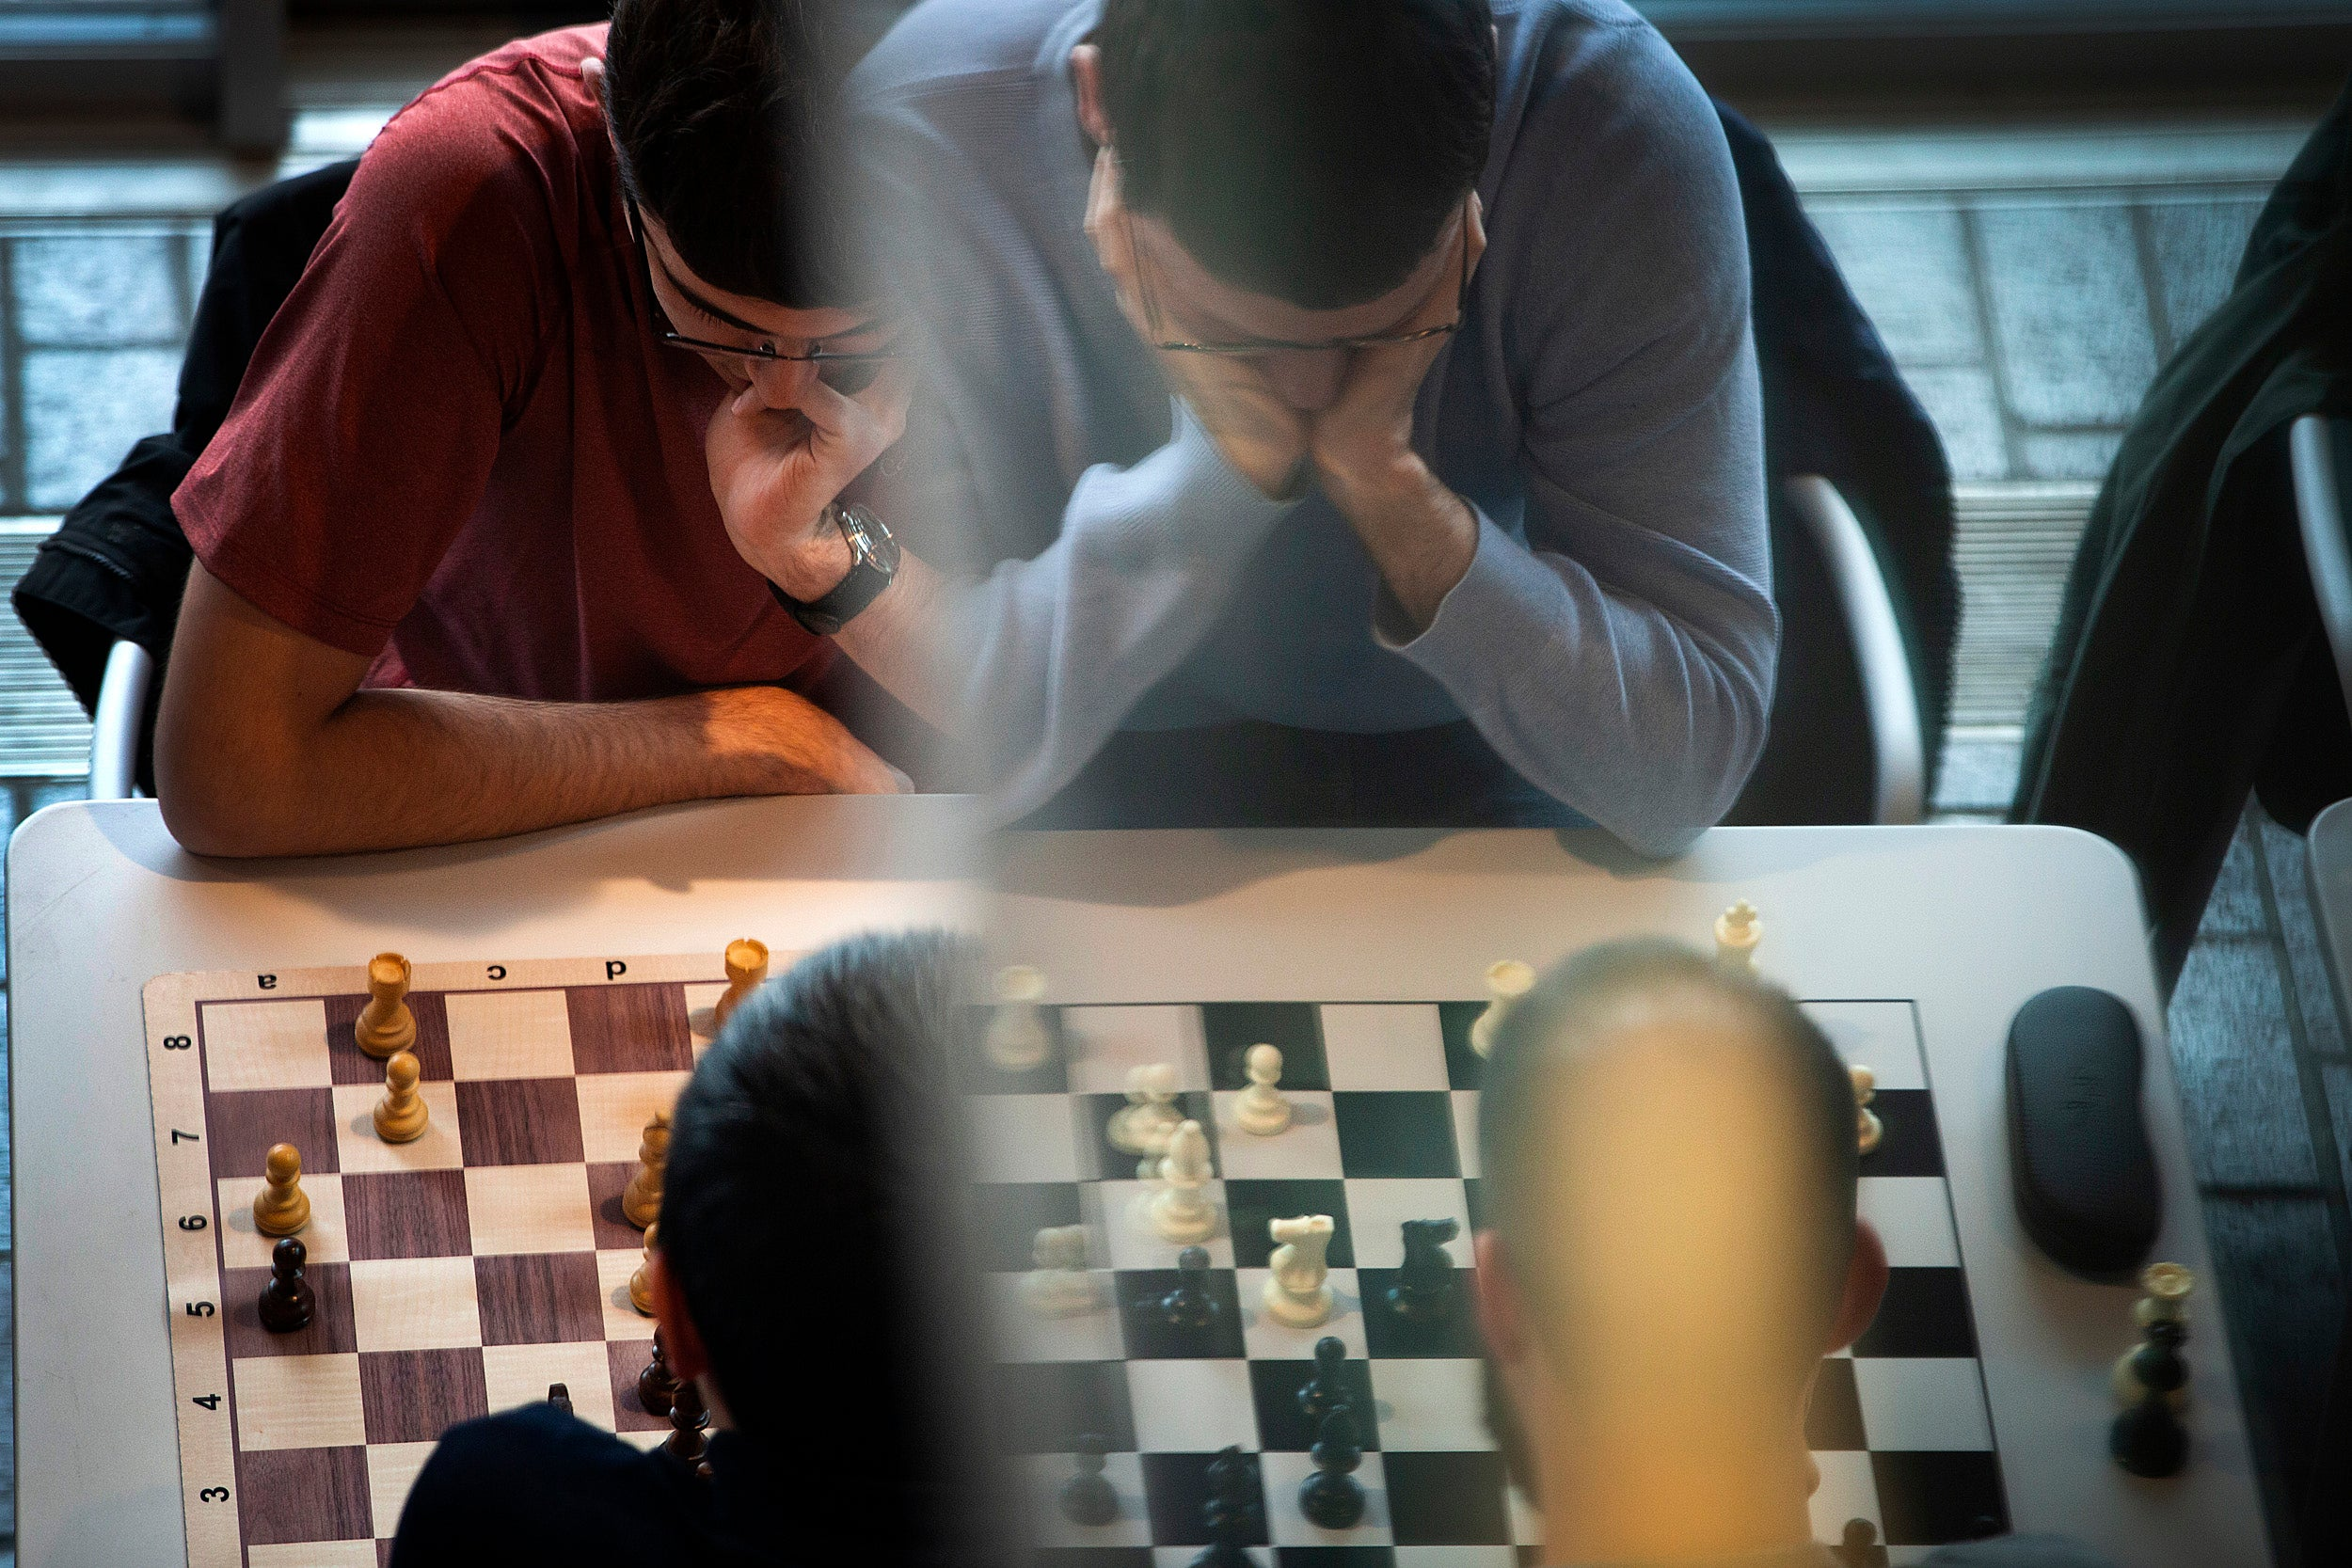 Chess players concentrate.